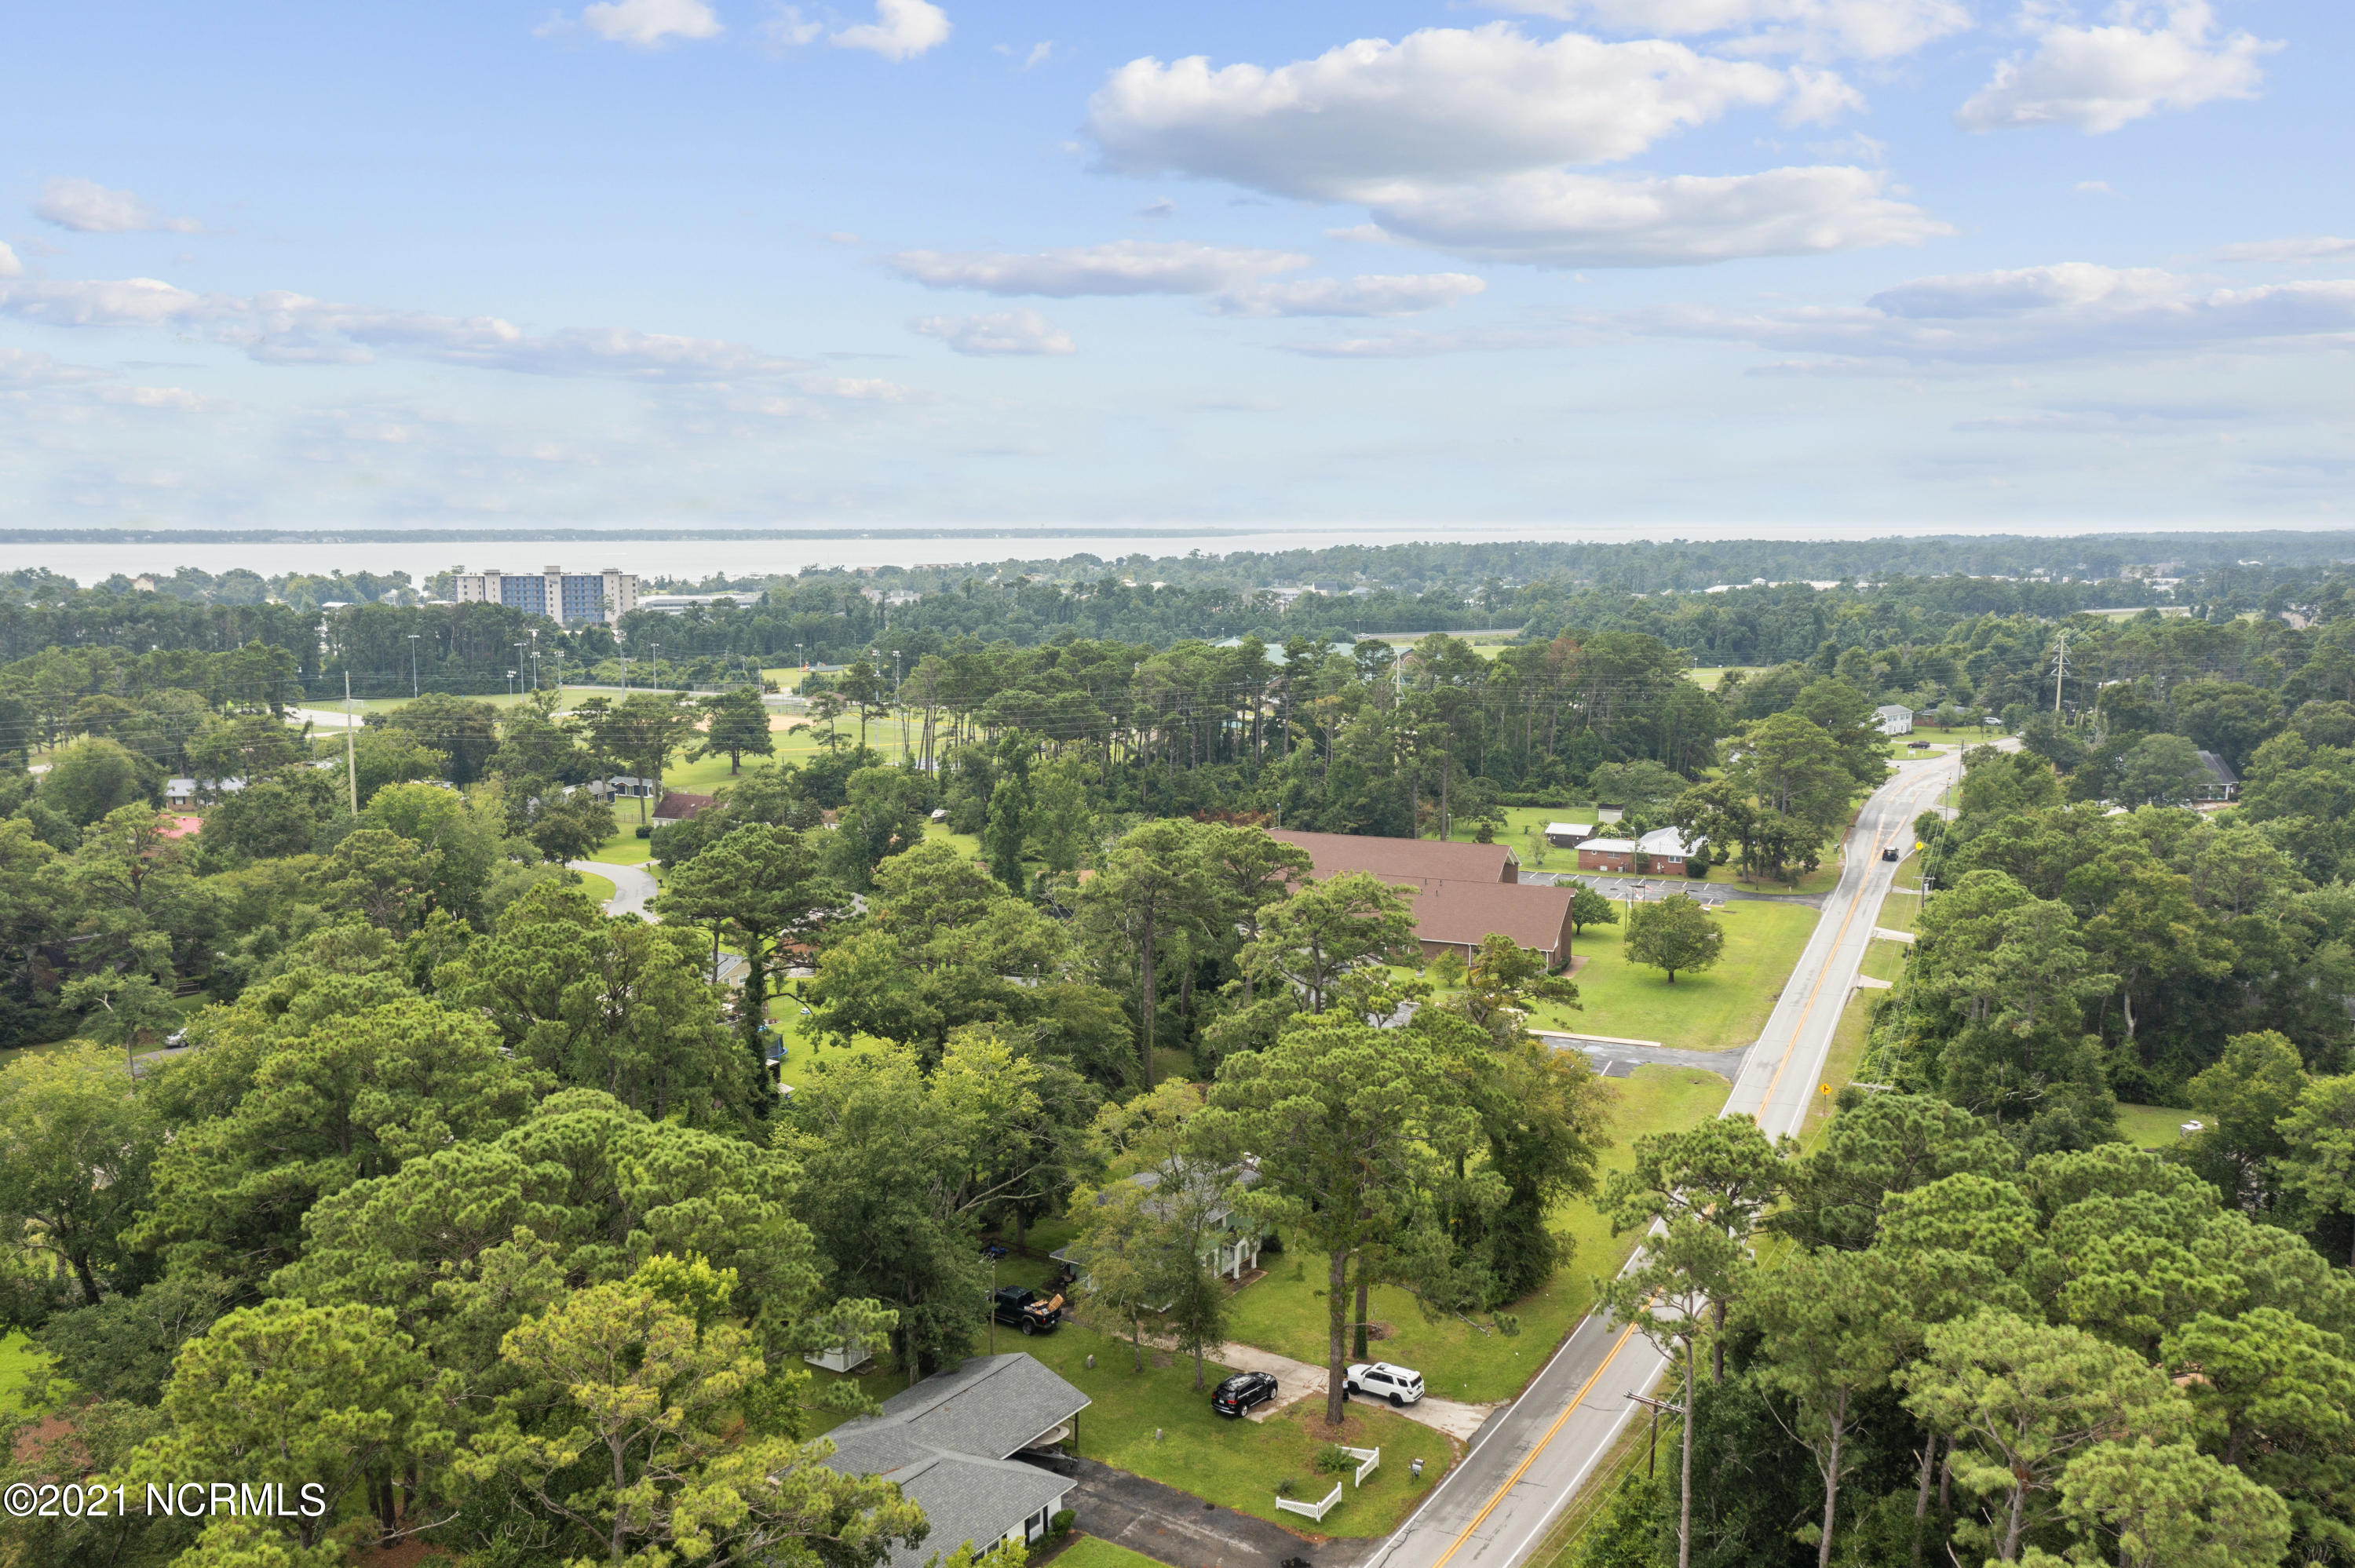 4305 Country Club Road, Morehead City, North Carolina 28557, 4 Bedrooms Bedrooms, 8 Rooms Rooms,1 BathroomBathrooms,Single family residence,For sale,Country Club,100285211